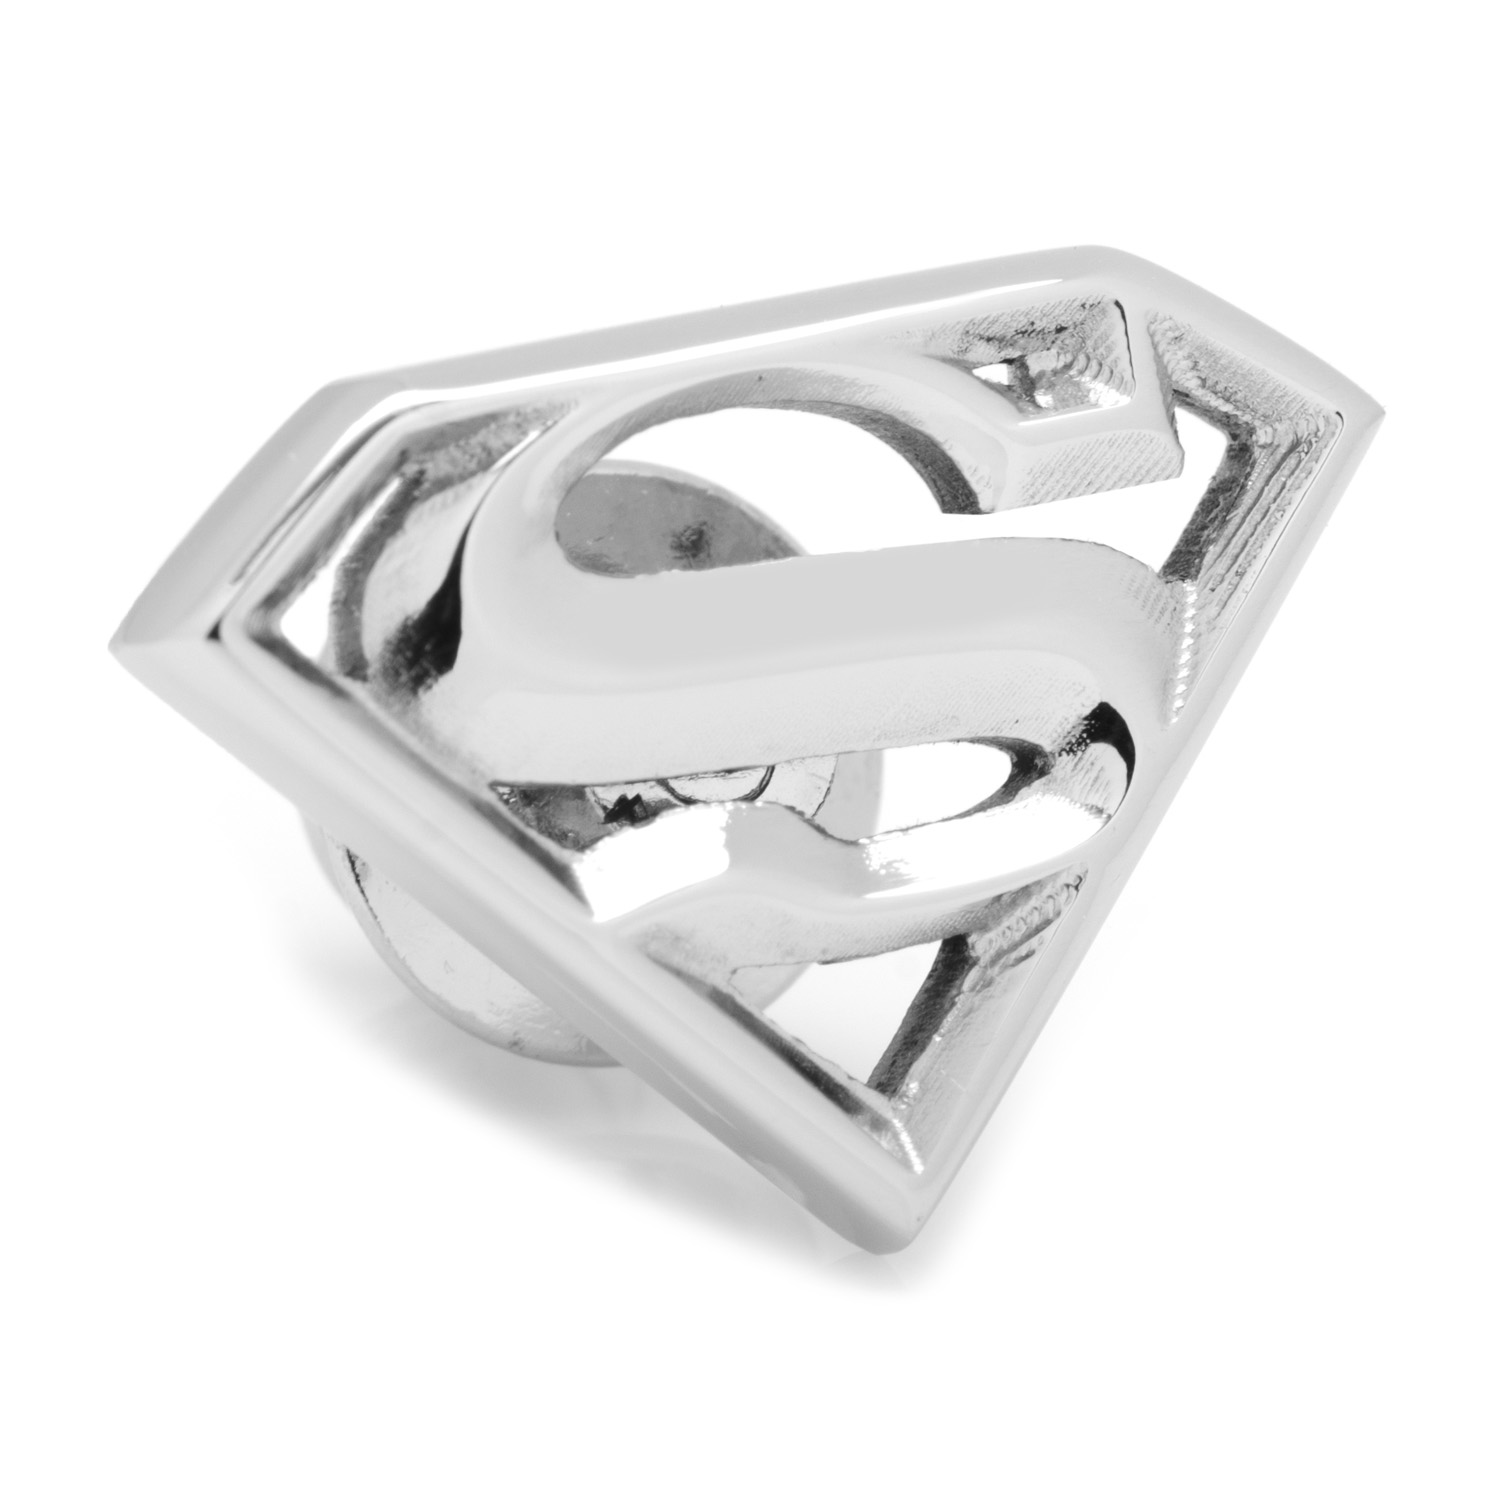 Stainless Steel Superman Lapel Pin